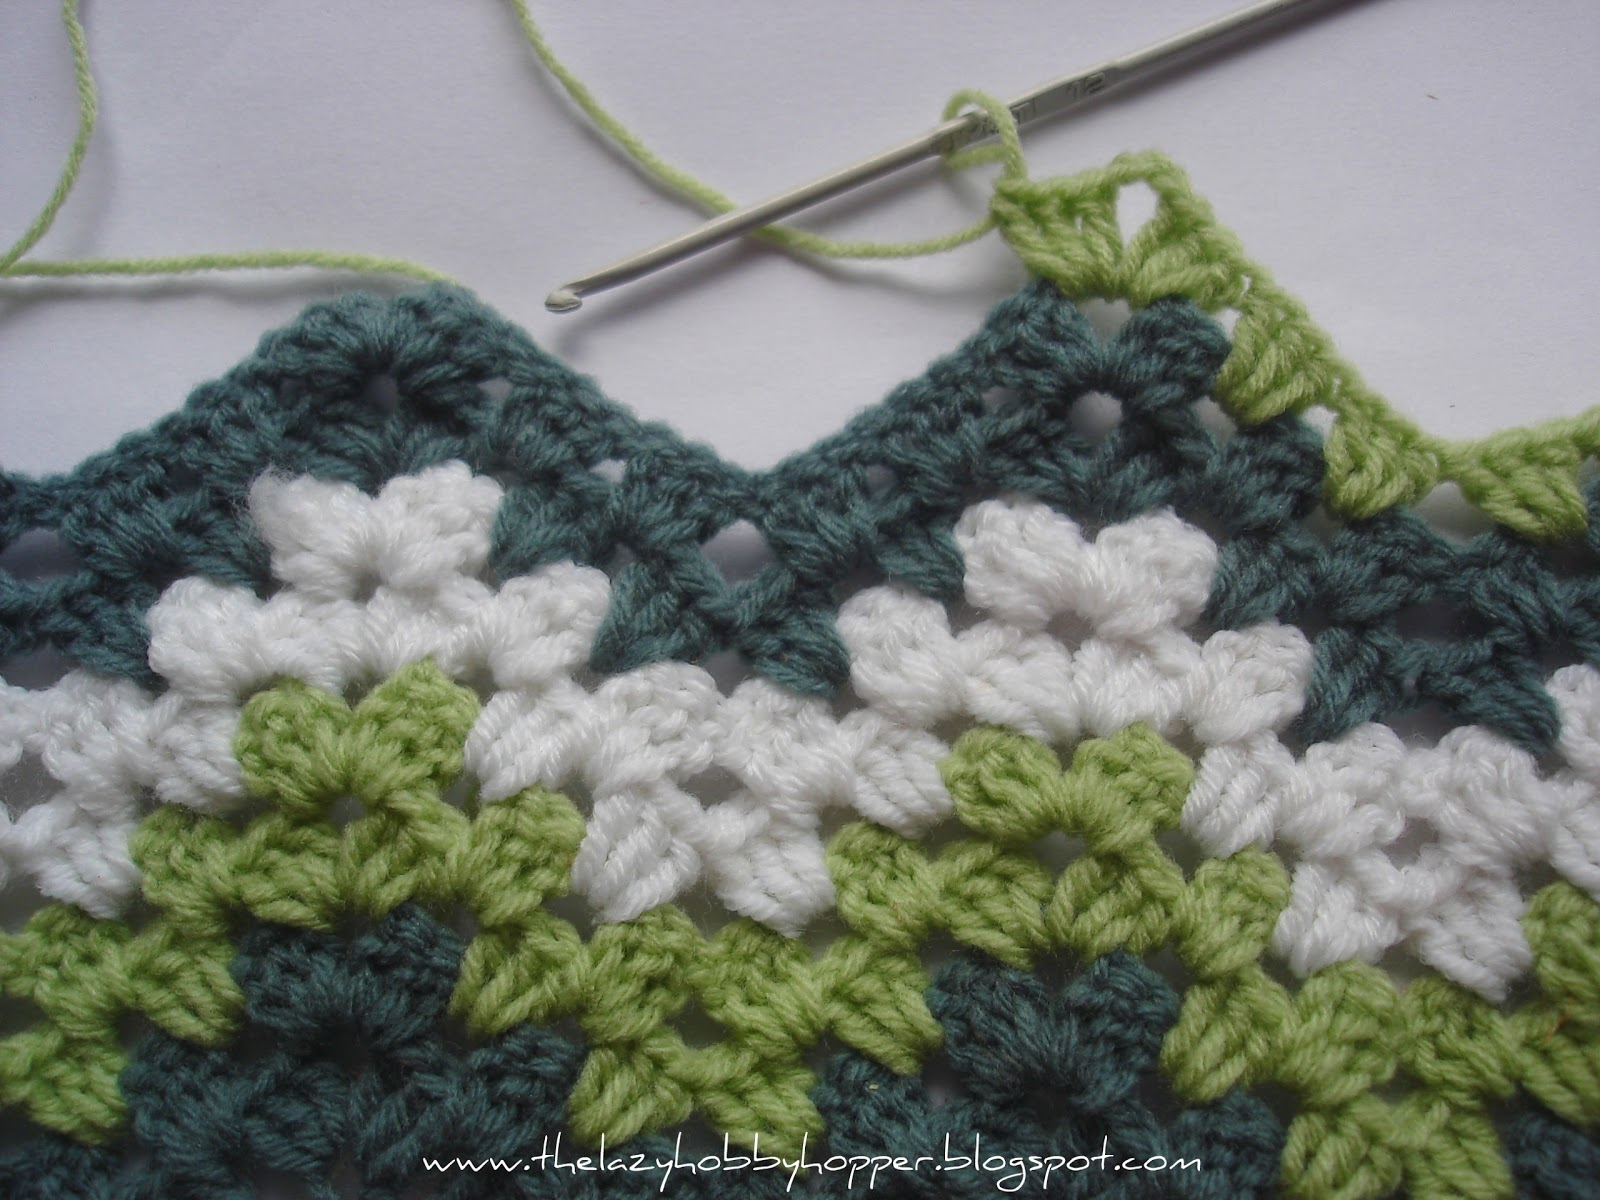 Crochet Stitches Video Free : ... many of you who can crochet fairly well may not know how to crochet a